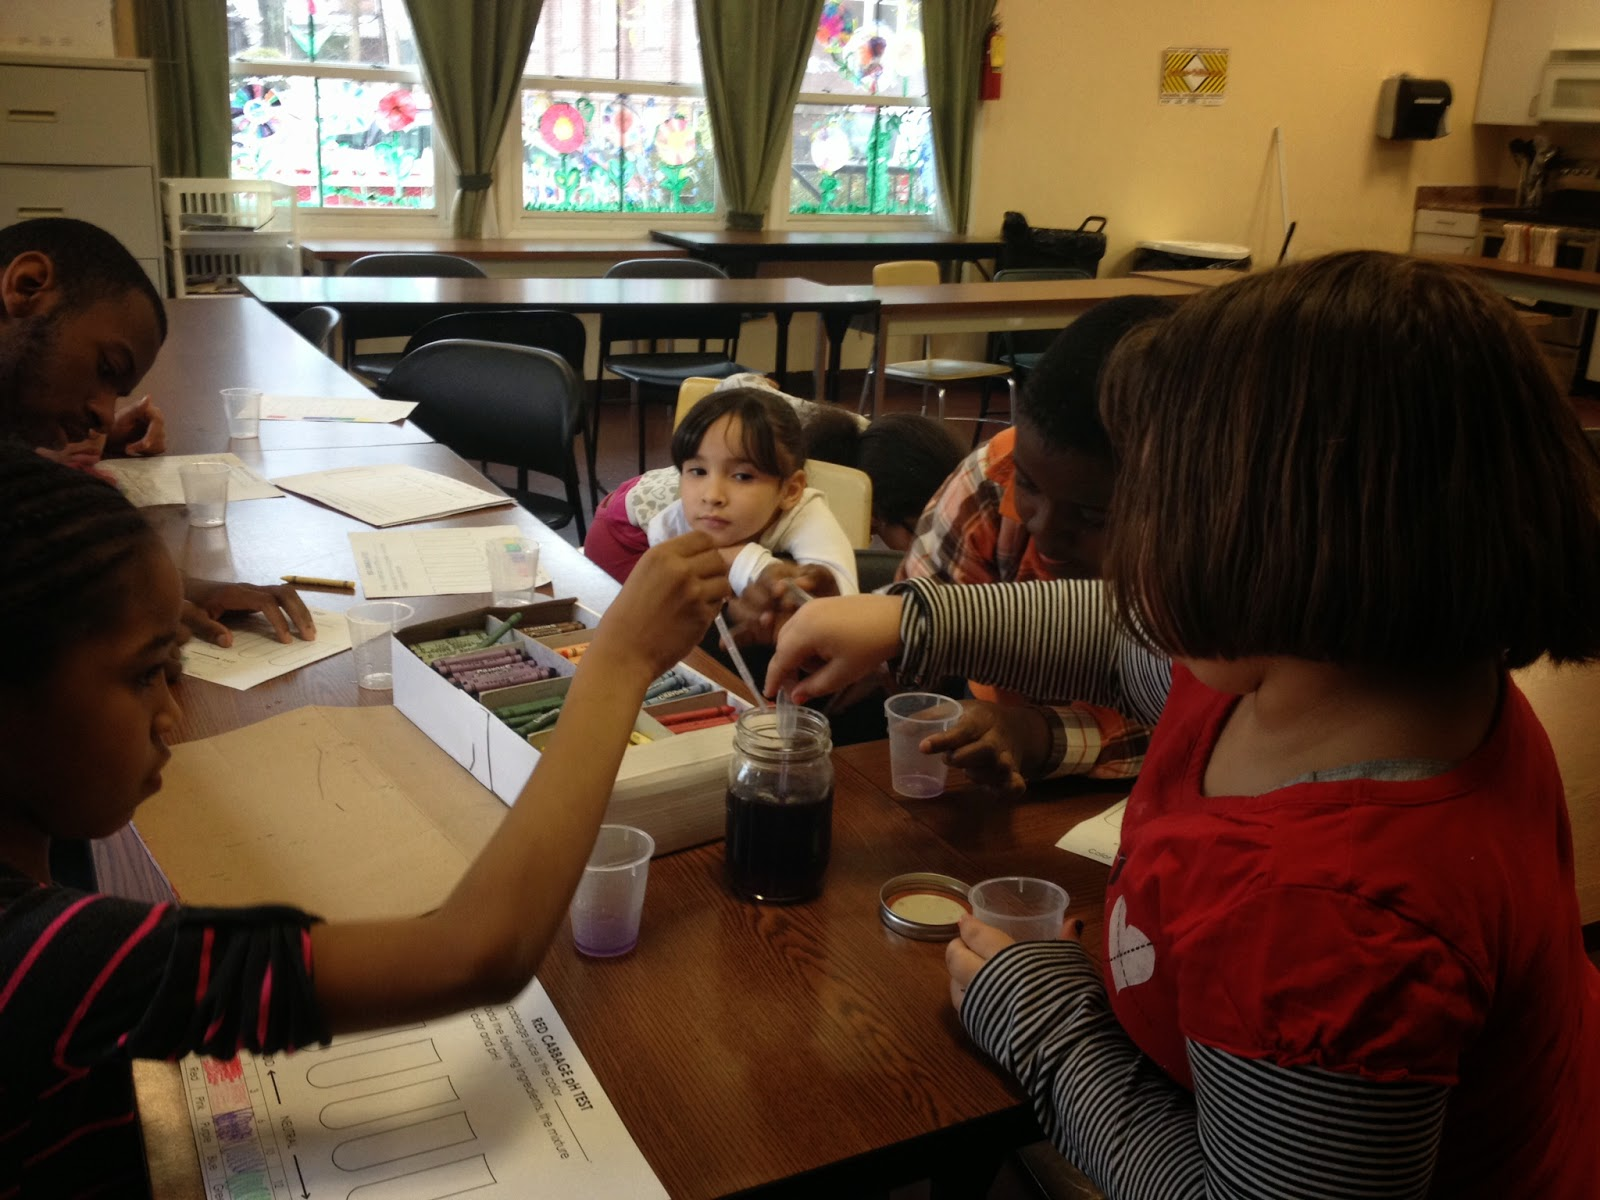 Learning By Doing Testing Ph Using Household Items